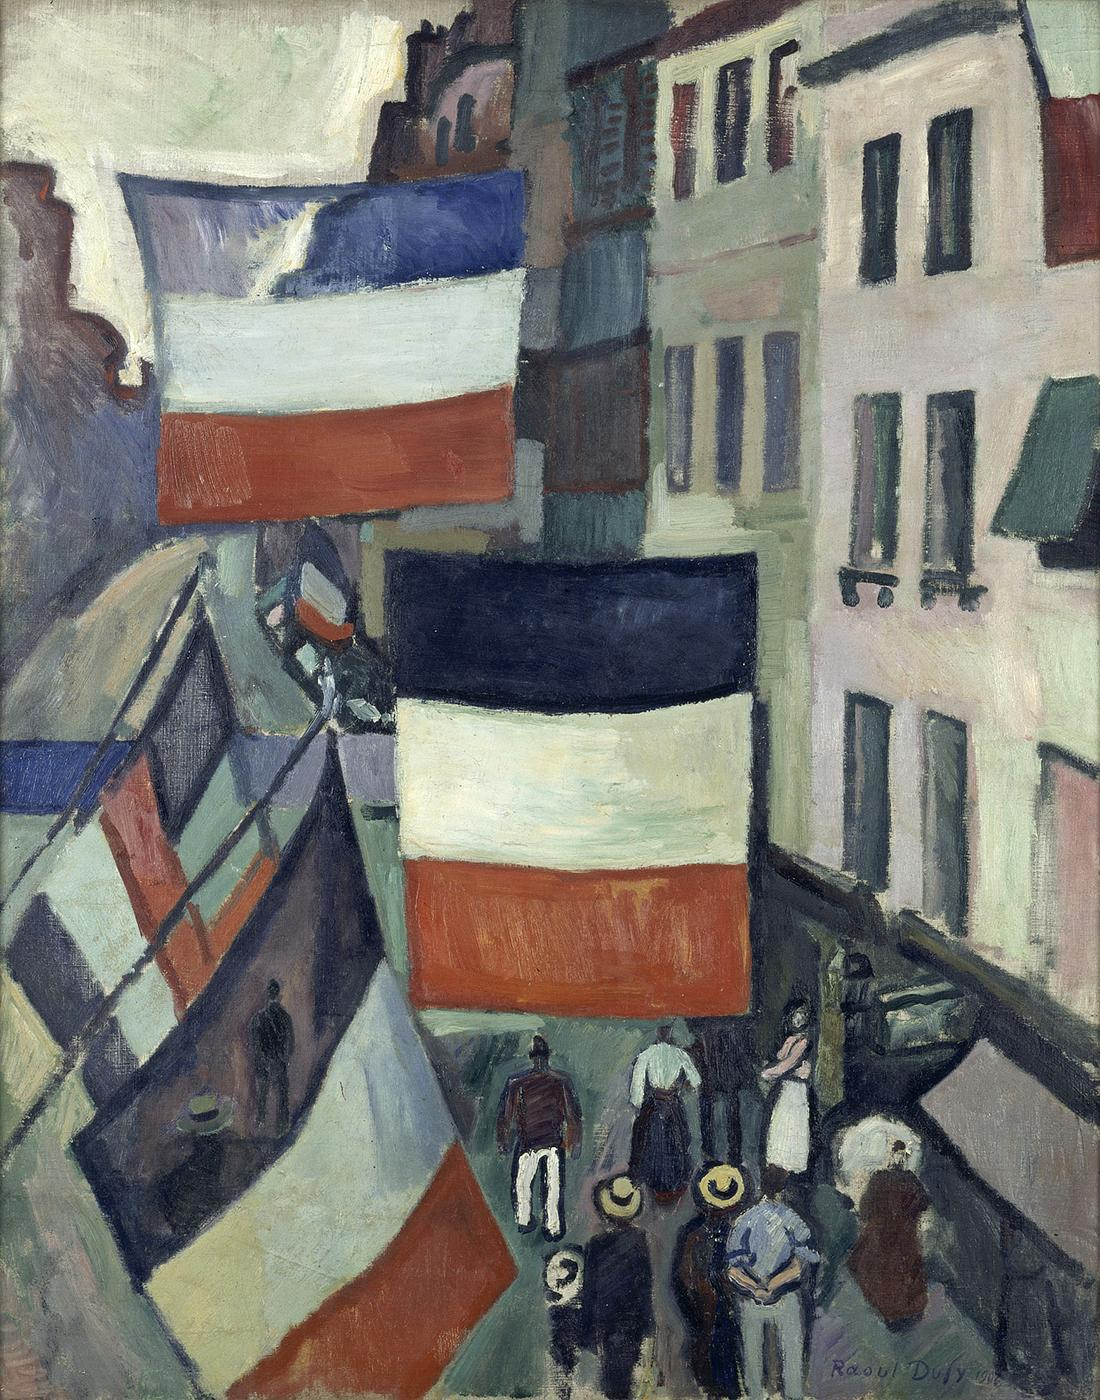 Raoul Dufy, The Street Decked with Flags, 1906, oil on canvas, 81 x 65 cm (MNAM, Centre Pompidou, Paris)